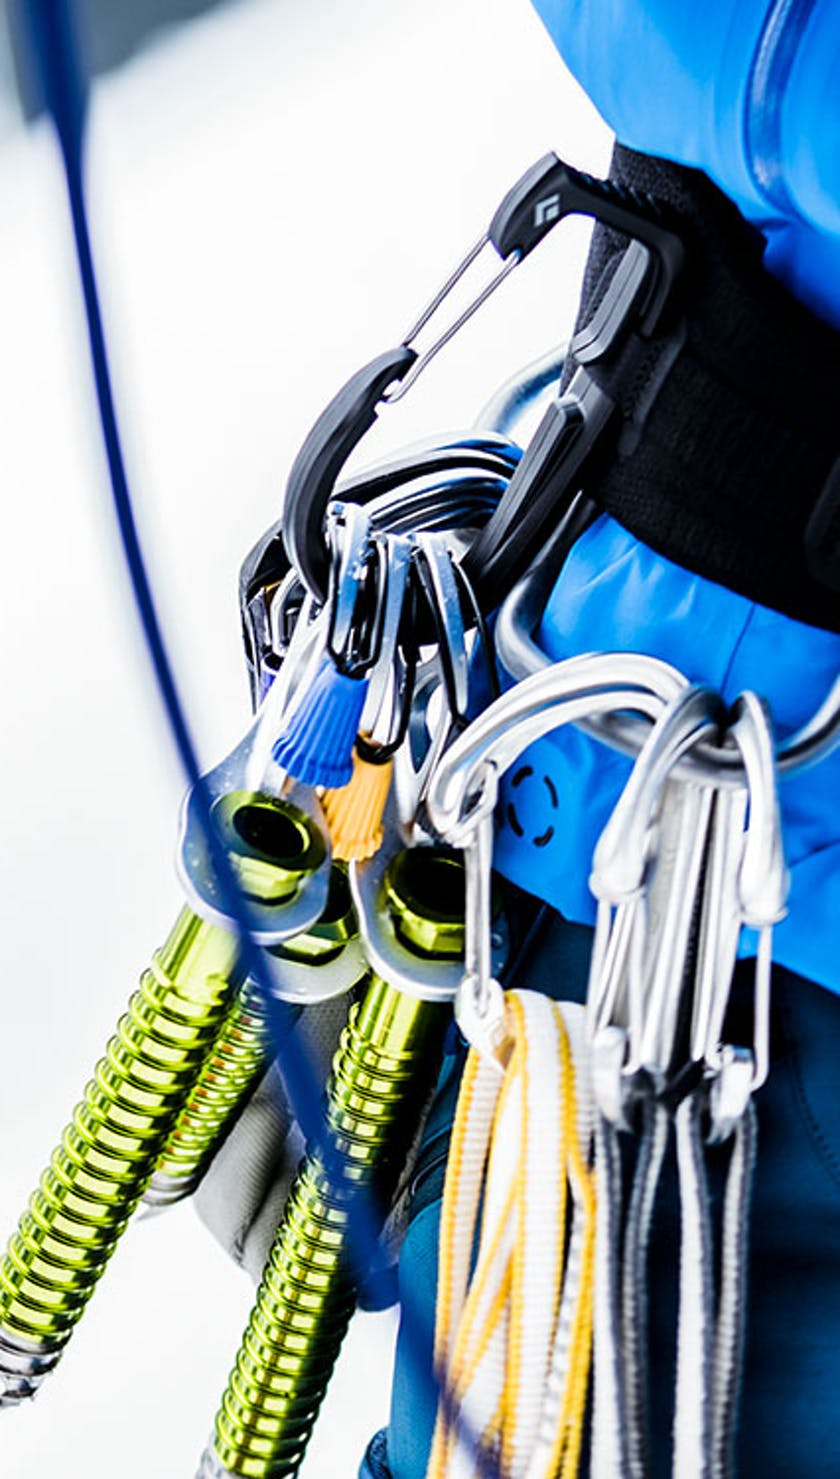 ice climbing gear hanging from harness